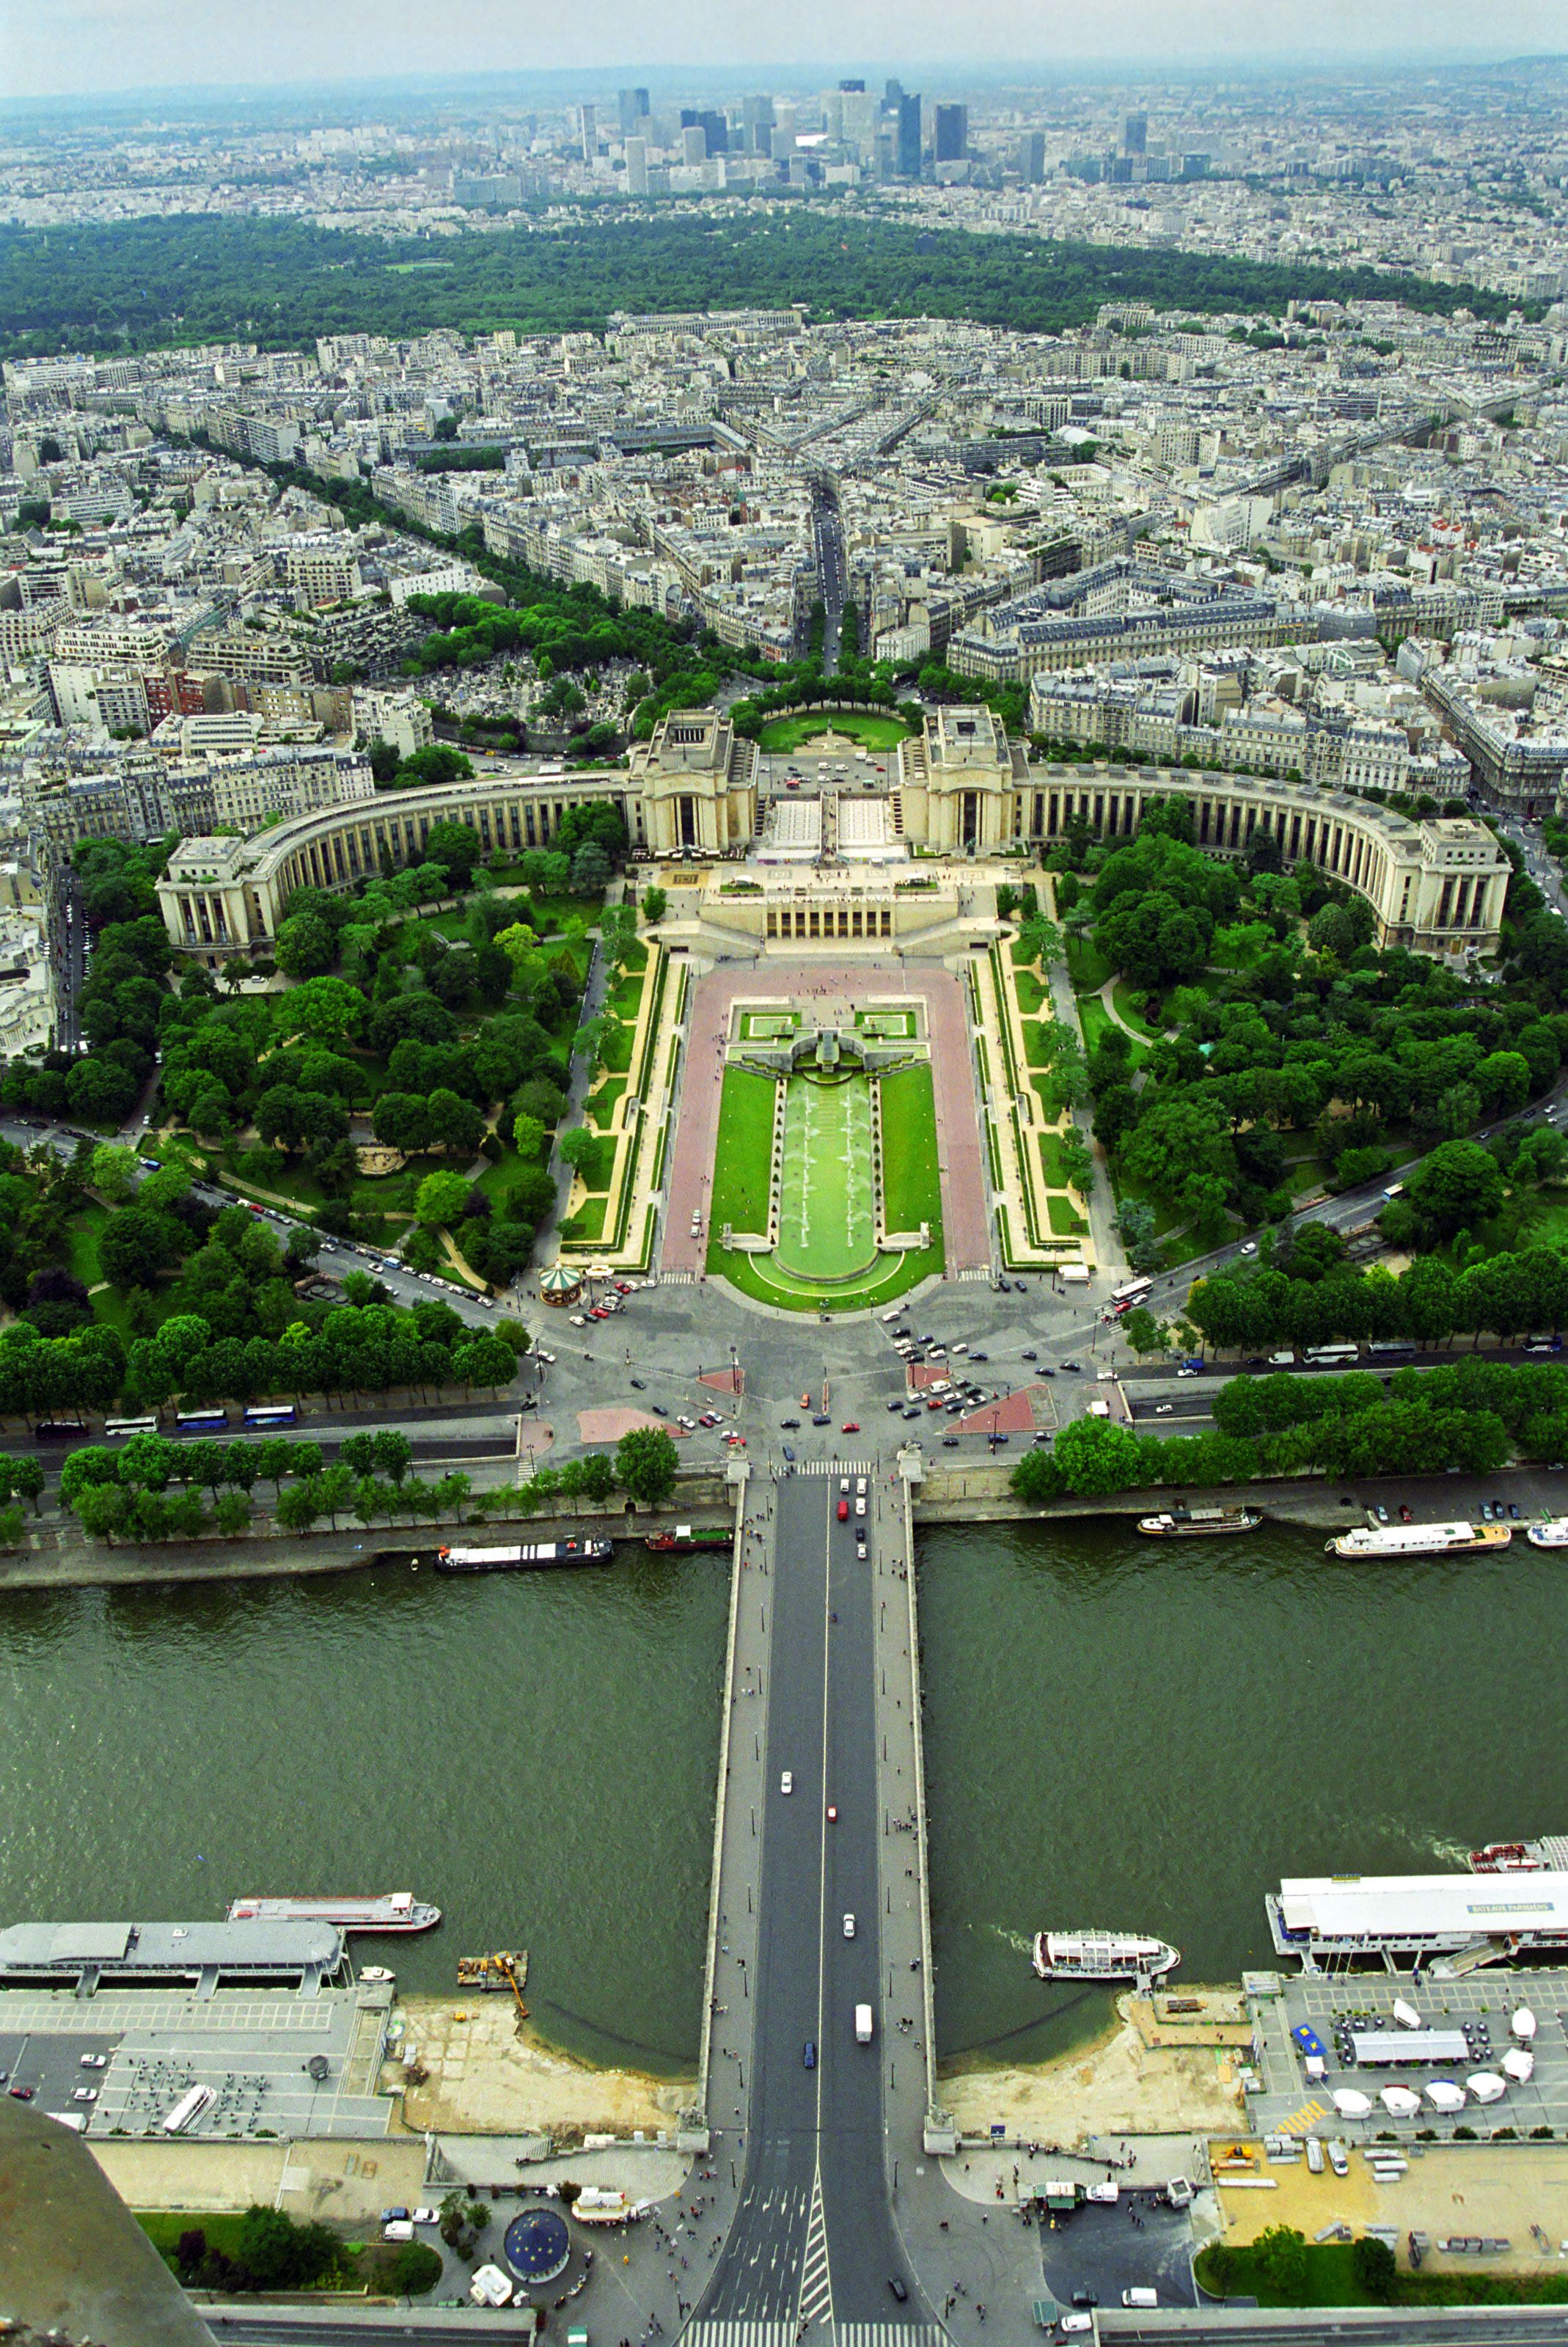 The Trocadero from the Eiffel Tower